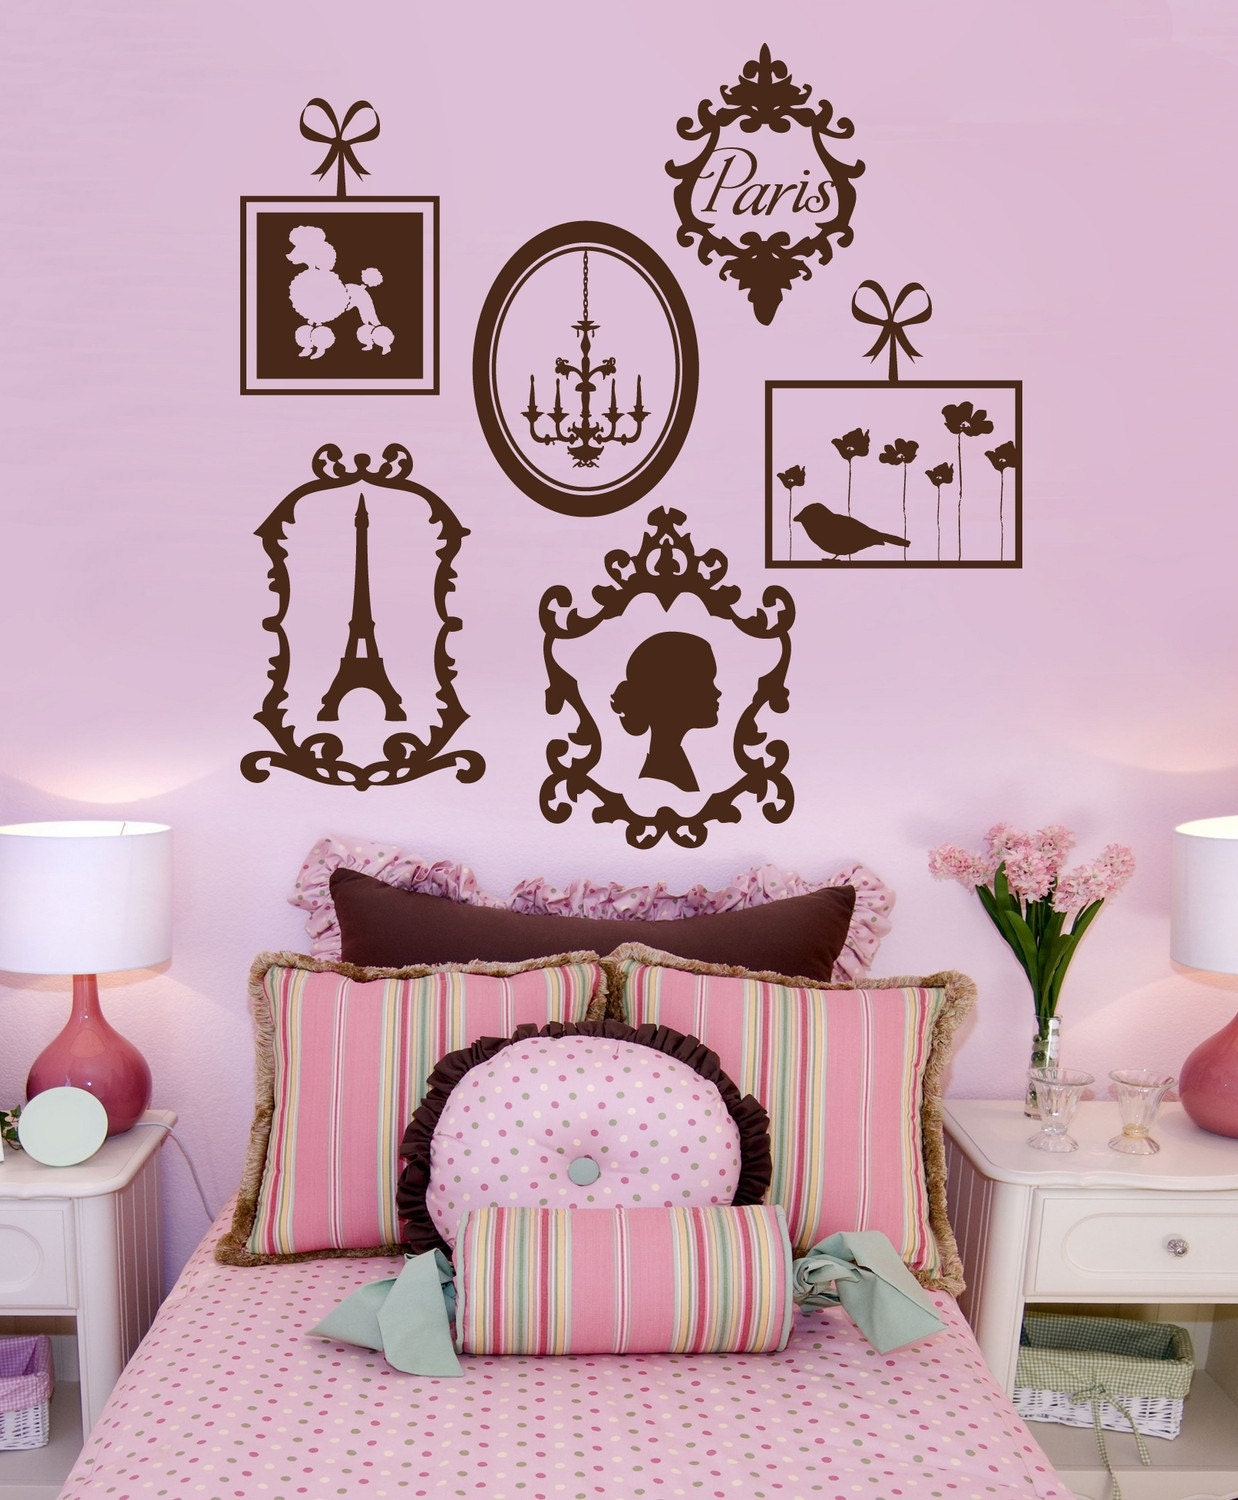 Paris Themed Bedroom Accessories Lighting For Small Bedroom Bedroom Accessories For Guys Bedroom Carpet Trends 2016: Paris Vinyl Wall Decals French Frame Collage Graphics